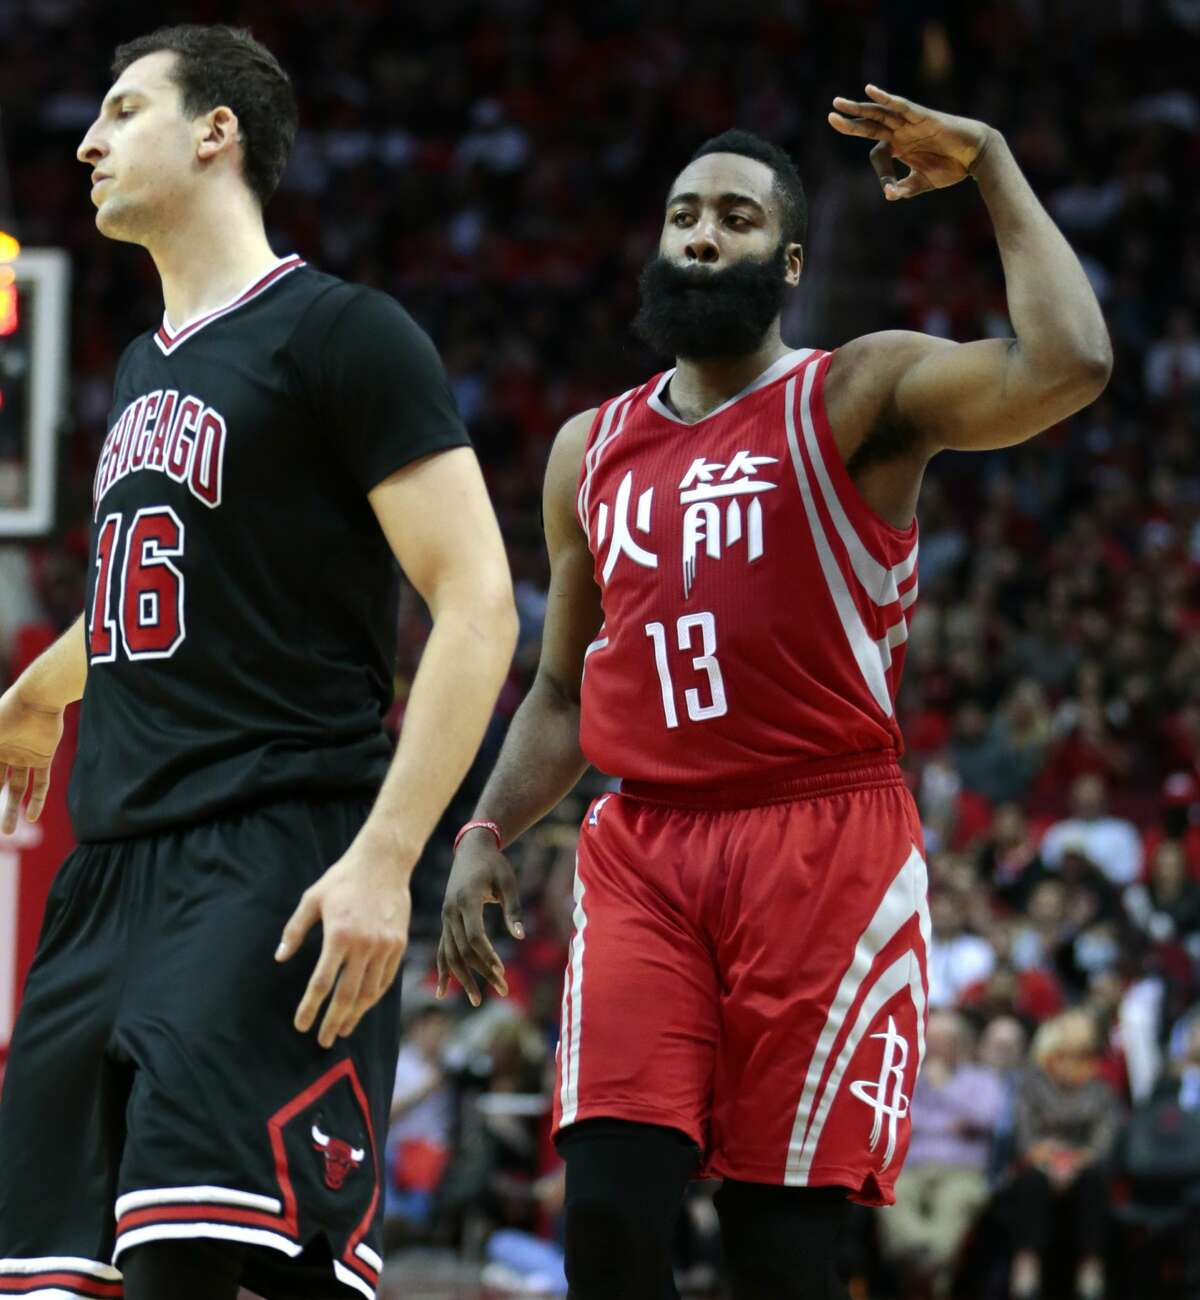 Houston Rockets guard James Harden (13) reacts after hitting a 3-pointer over Chicago Bulls forward Paul Zipser (16) during the fourth quarter of an NBA basketball game at Toyota Center on Friday, Feb. 3, 2017, in Houston. ( Brett Coomer / Houston Chronicle )